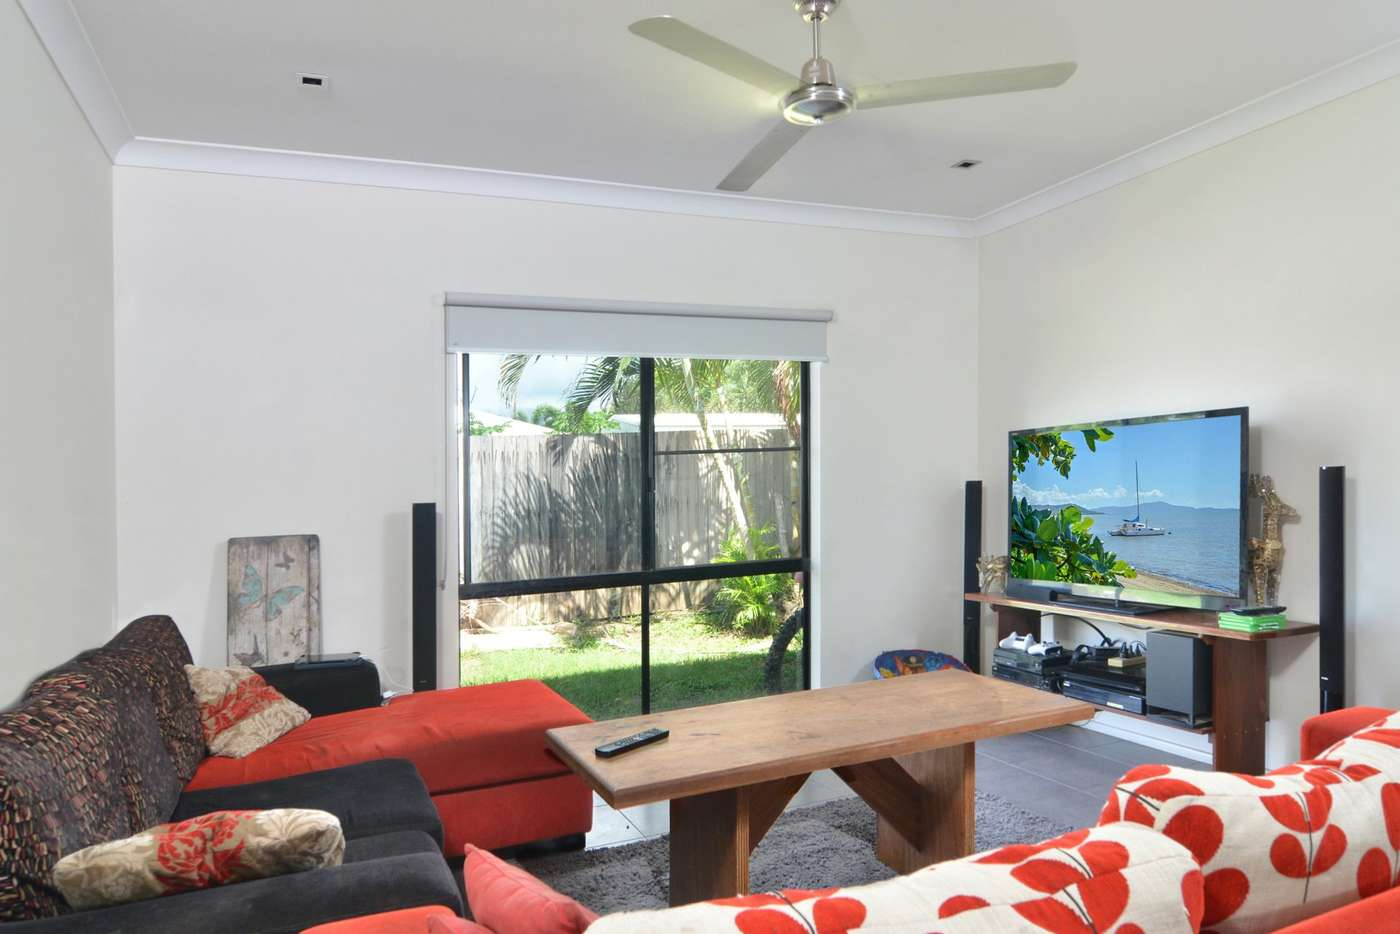 Main view of Homely house listing, 34 Bayil Drive, Cooya Beach QLD 4873